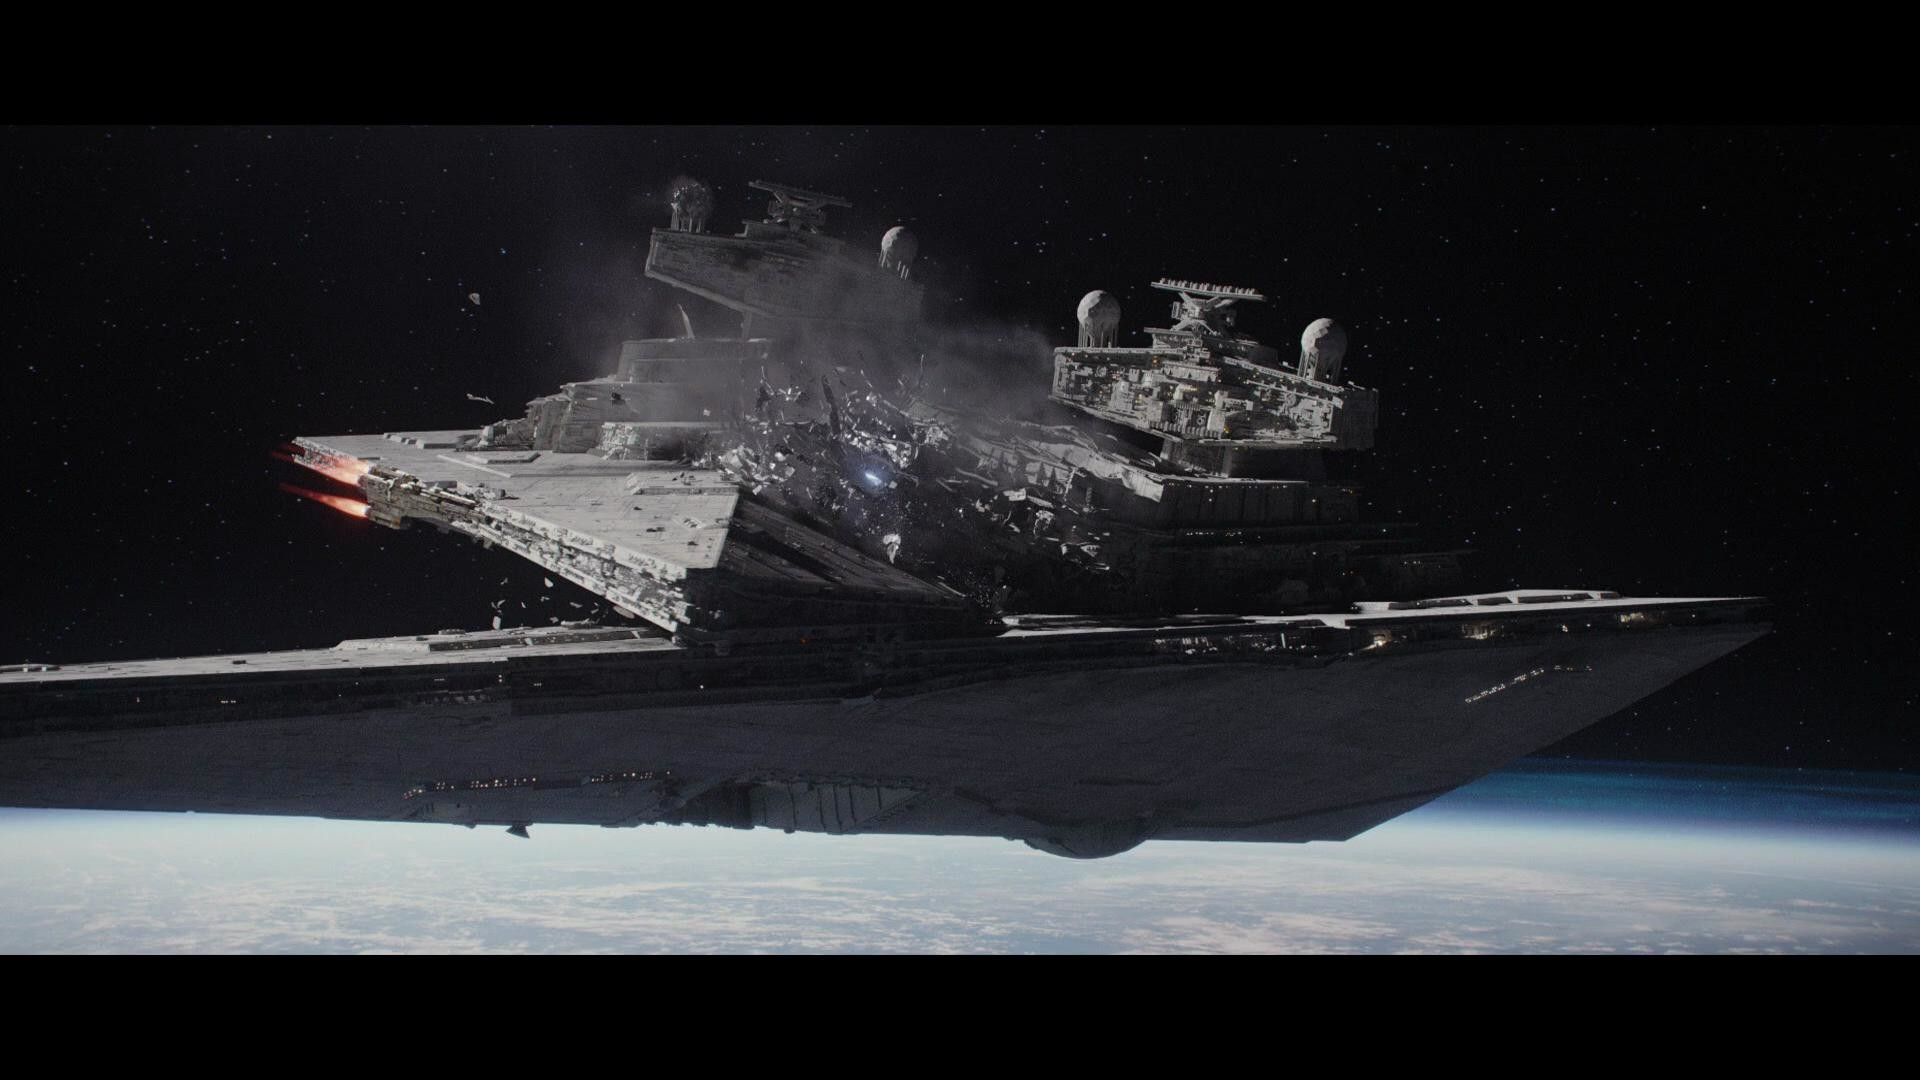 Star Wars Rogue One Star Destroyer Crash 1852242 Hd Wallpaper Backgrounds Download